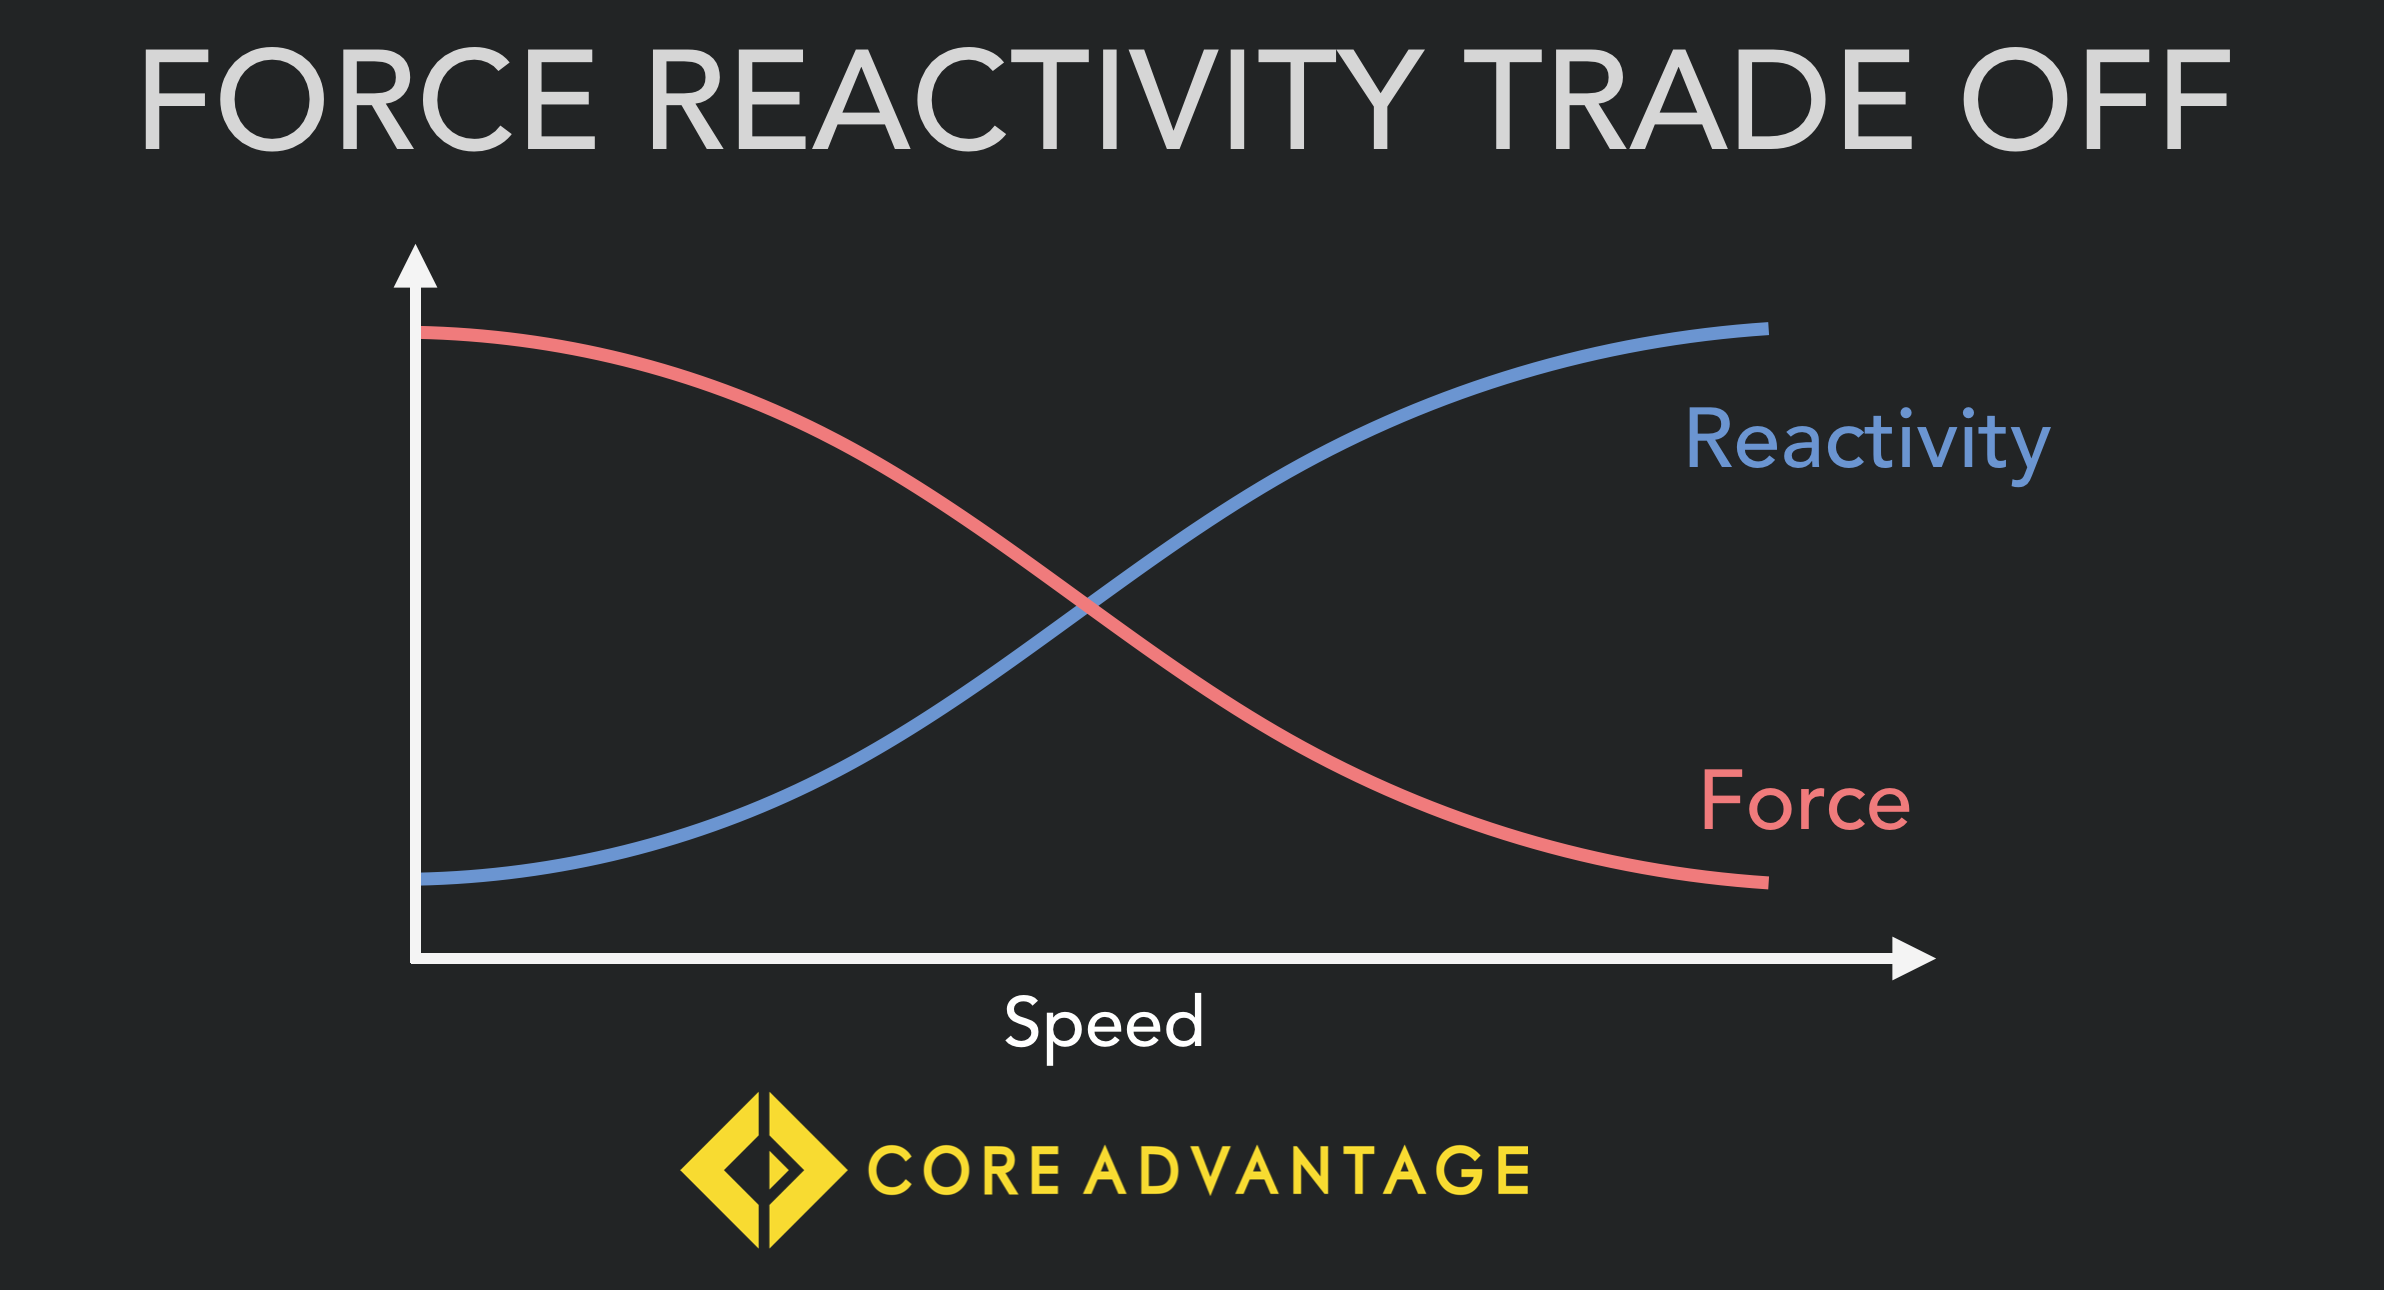 As we run faster contact time decreases and performance is much more about reactivity and musculotendonous elasticity. Acceleration is much more force and strength dependant